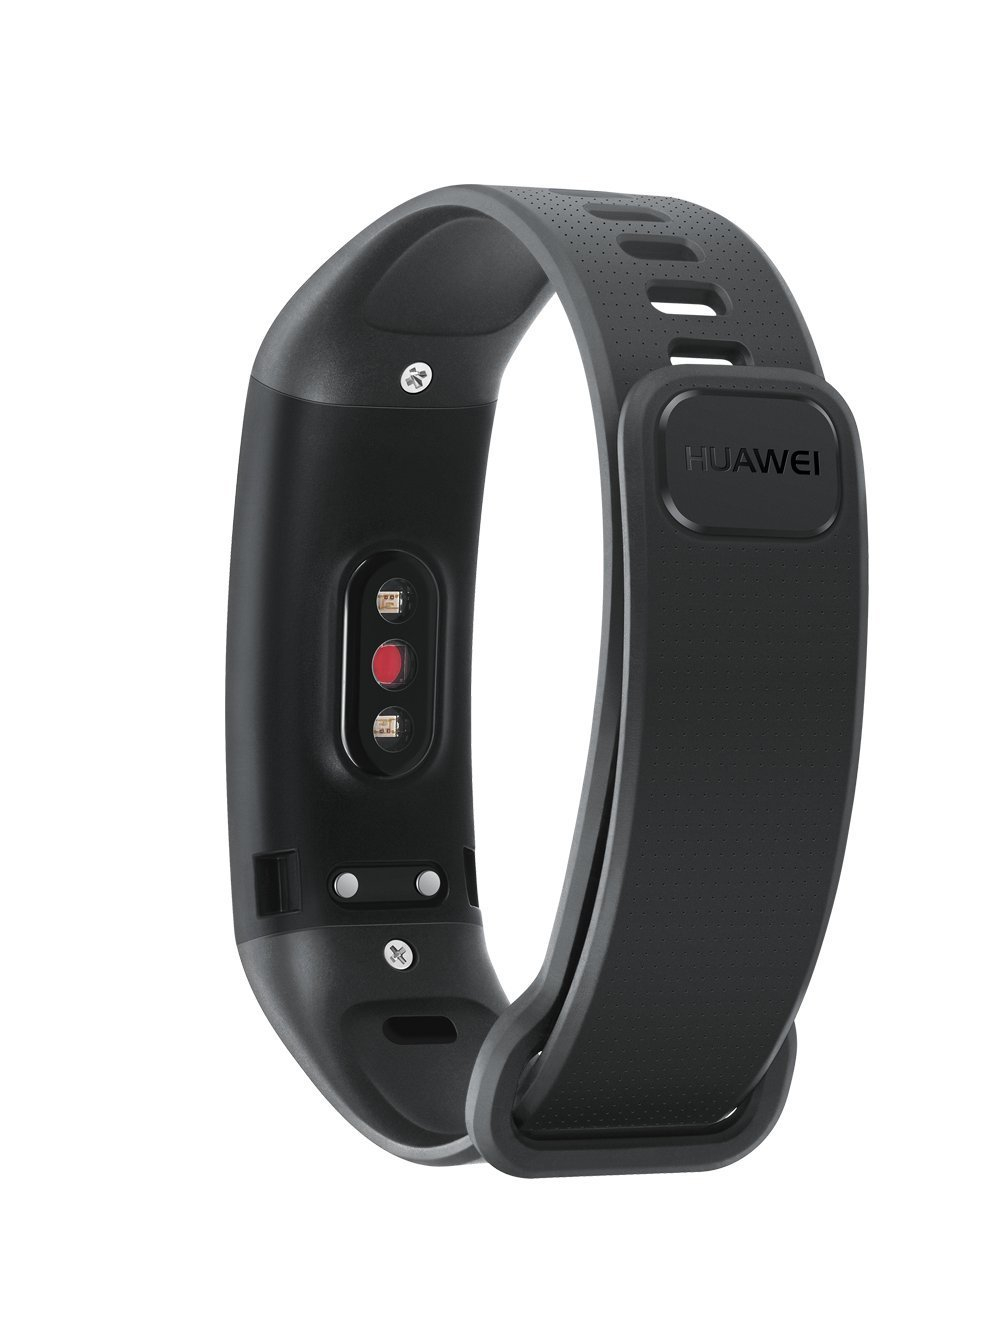 Watch Huawei Band 2 Pro chain bracelet fitness for mobile Huawei (GPS integrated, Firstbeat system). Color Black (Black). - 5